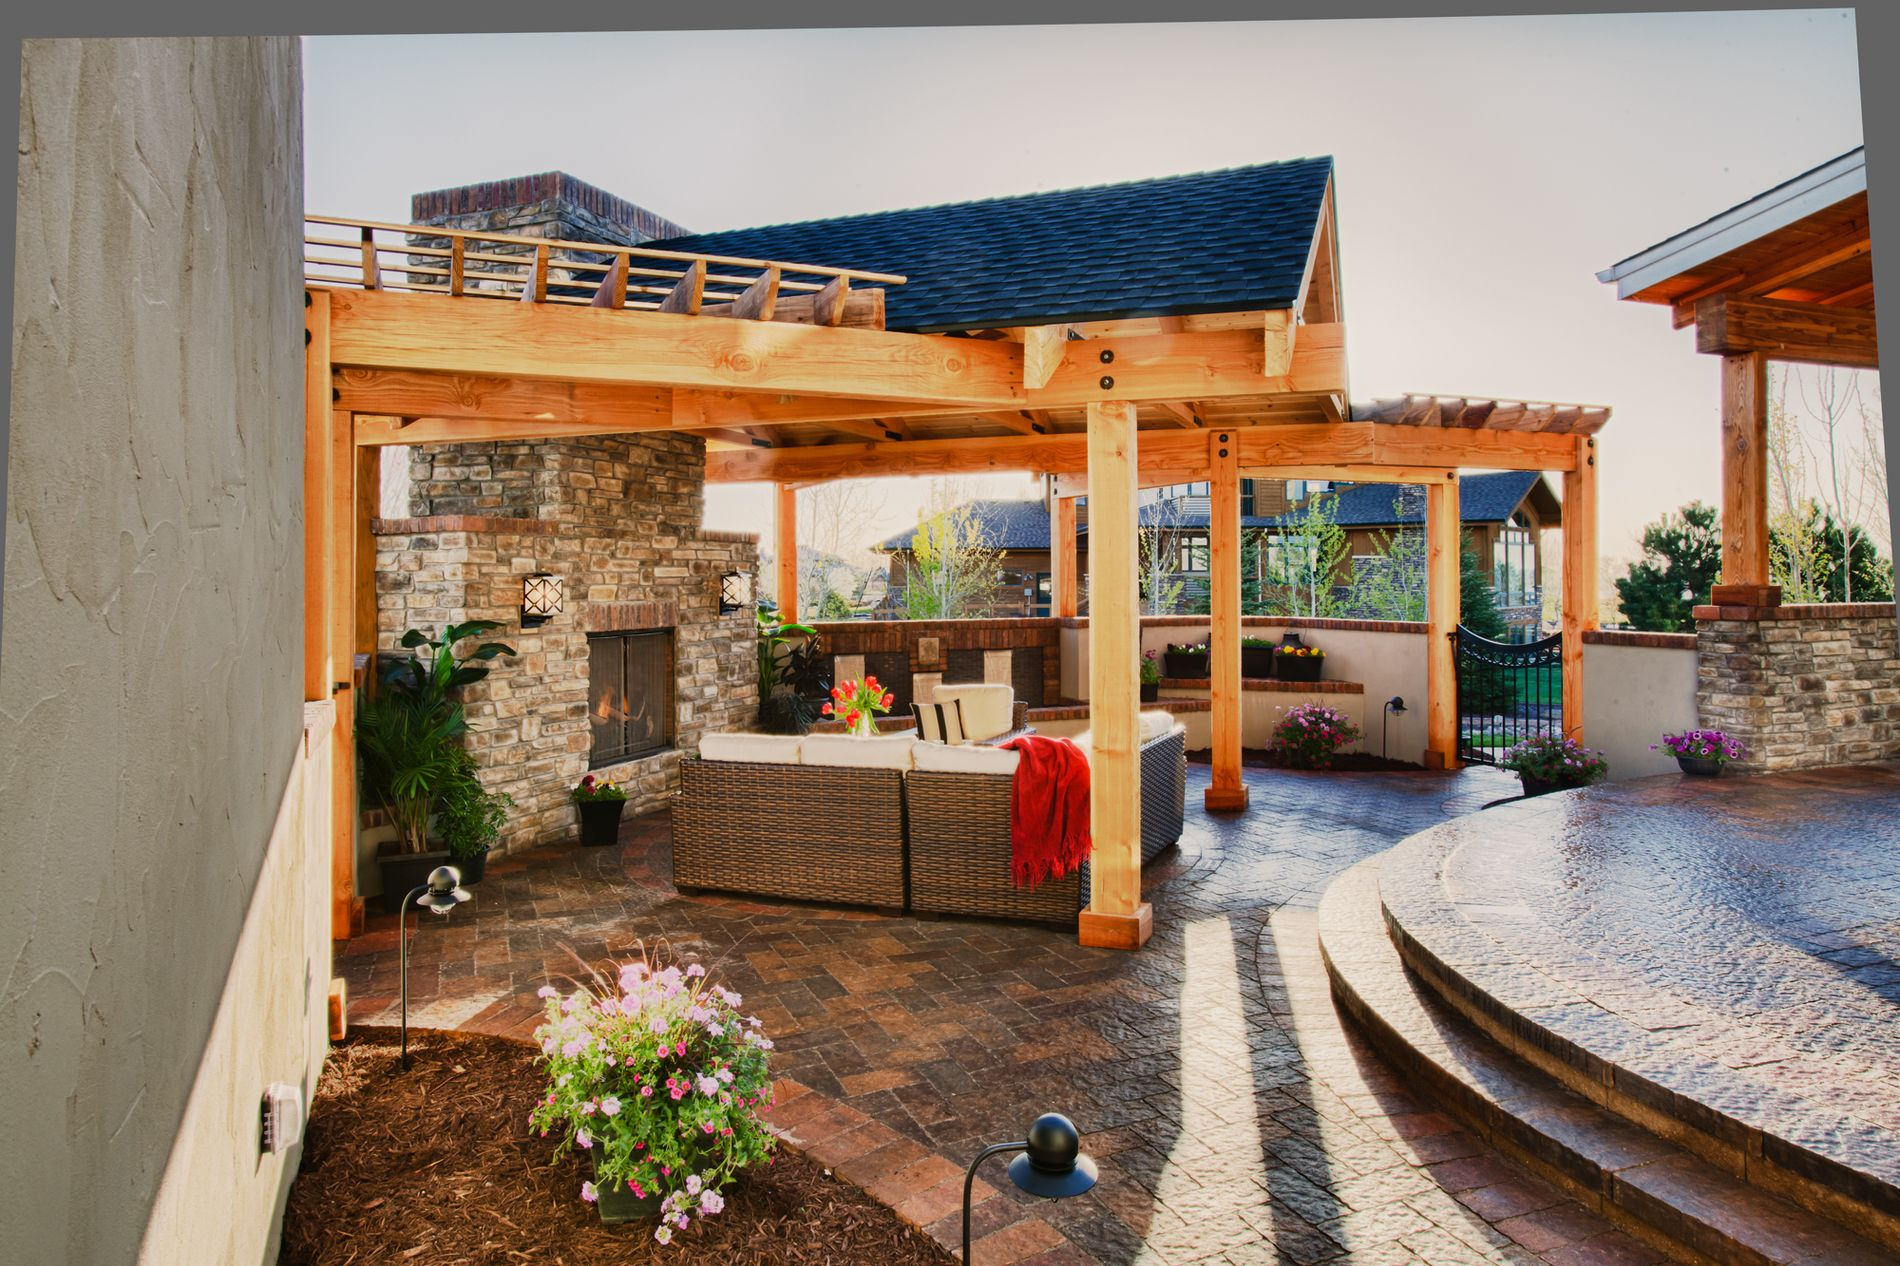 Outdoor Living Paver Patio with Covered Roof